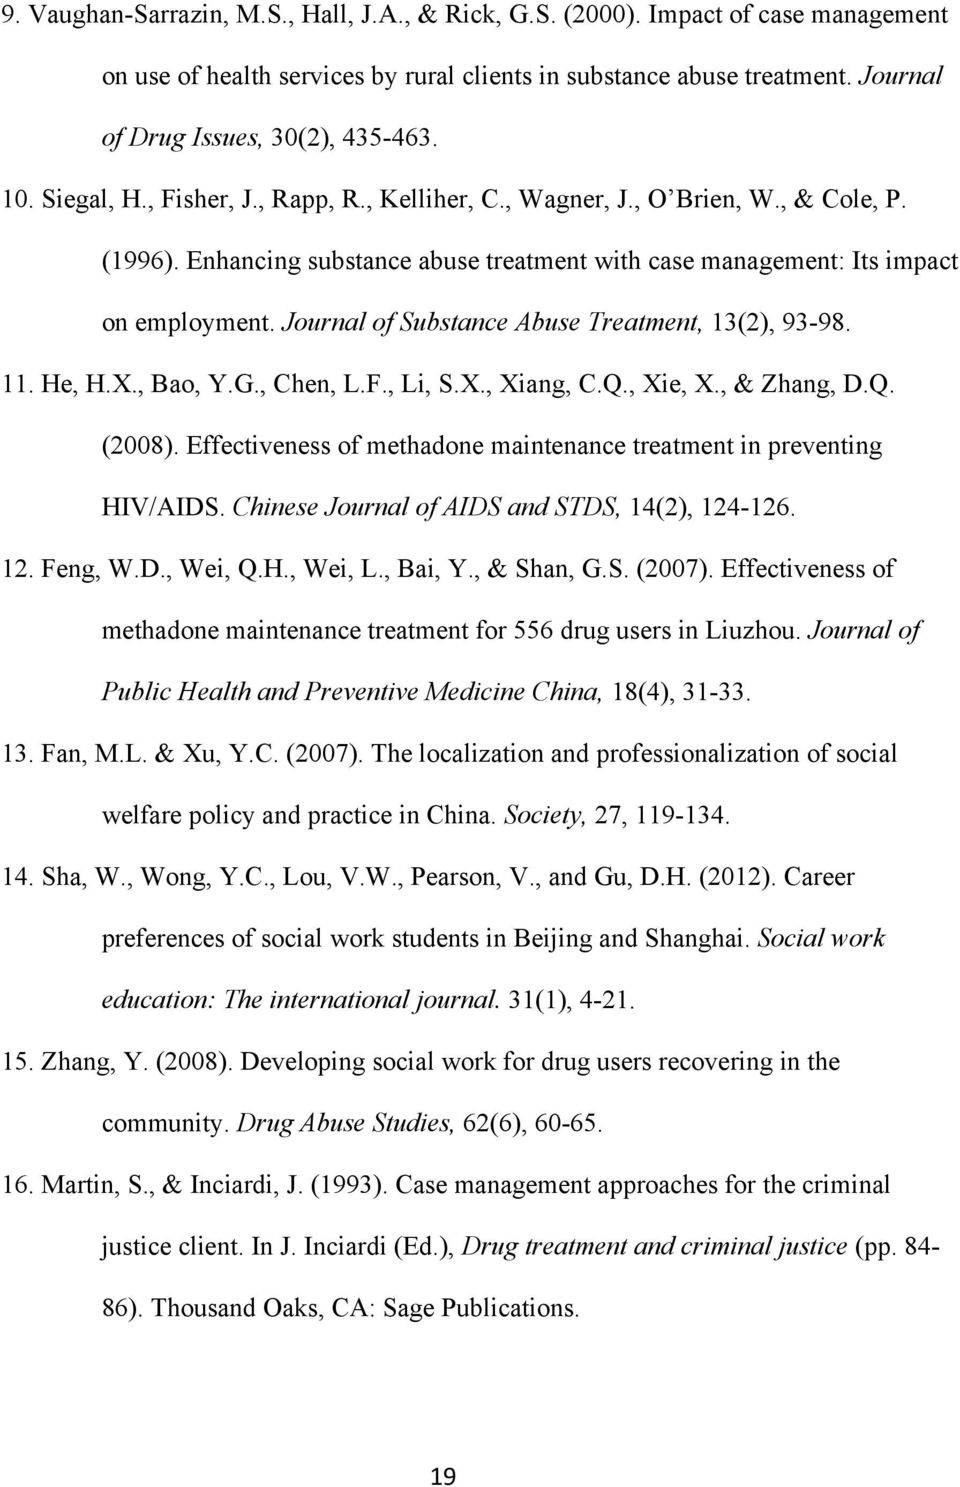 Journal of Substance Abuse Treatment, 13(2), 93-98. 11. He, H.X., Bao, Y.G., Chen, L.F., Li, S.X., Xiang, C.Q., Xie, X., & Zhang, D.Q. (2008).